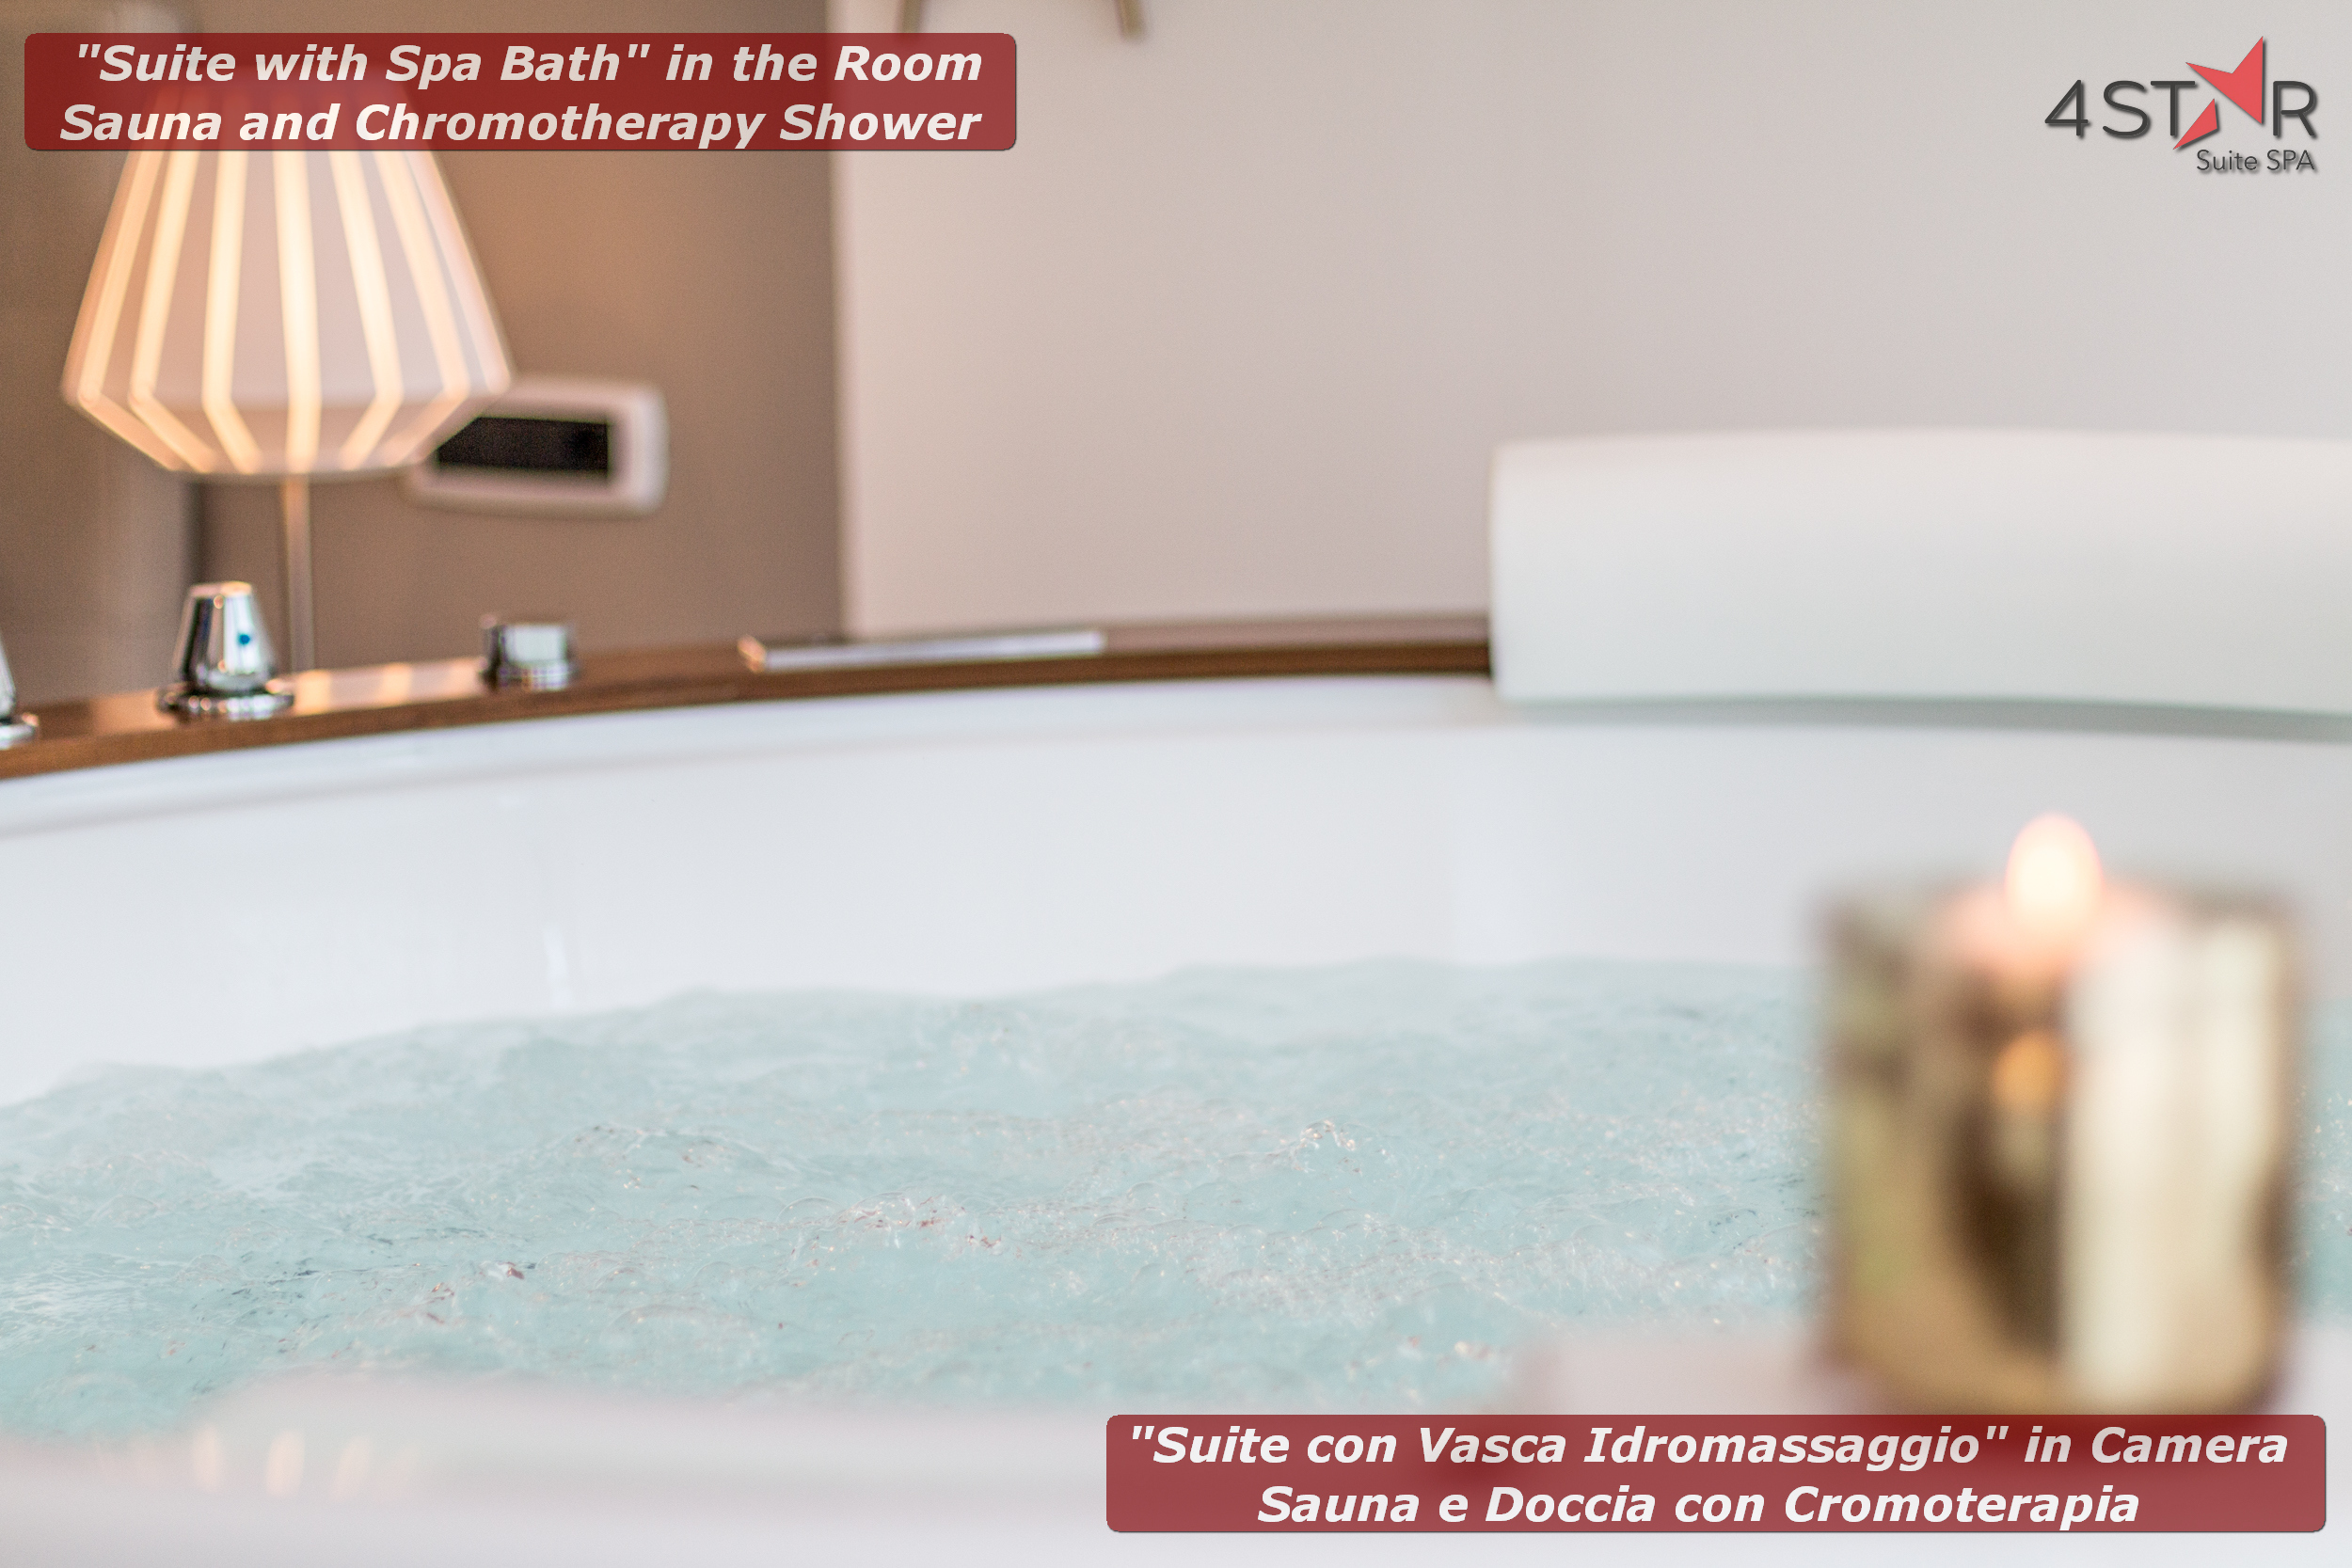 Suite With Spa Bath And Sauna 4starbologna Com Apartments For Rent In Bologna Emilia Romagna Italy